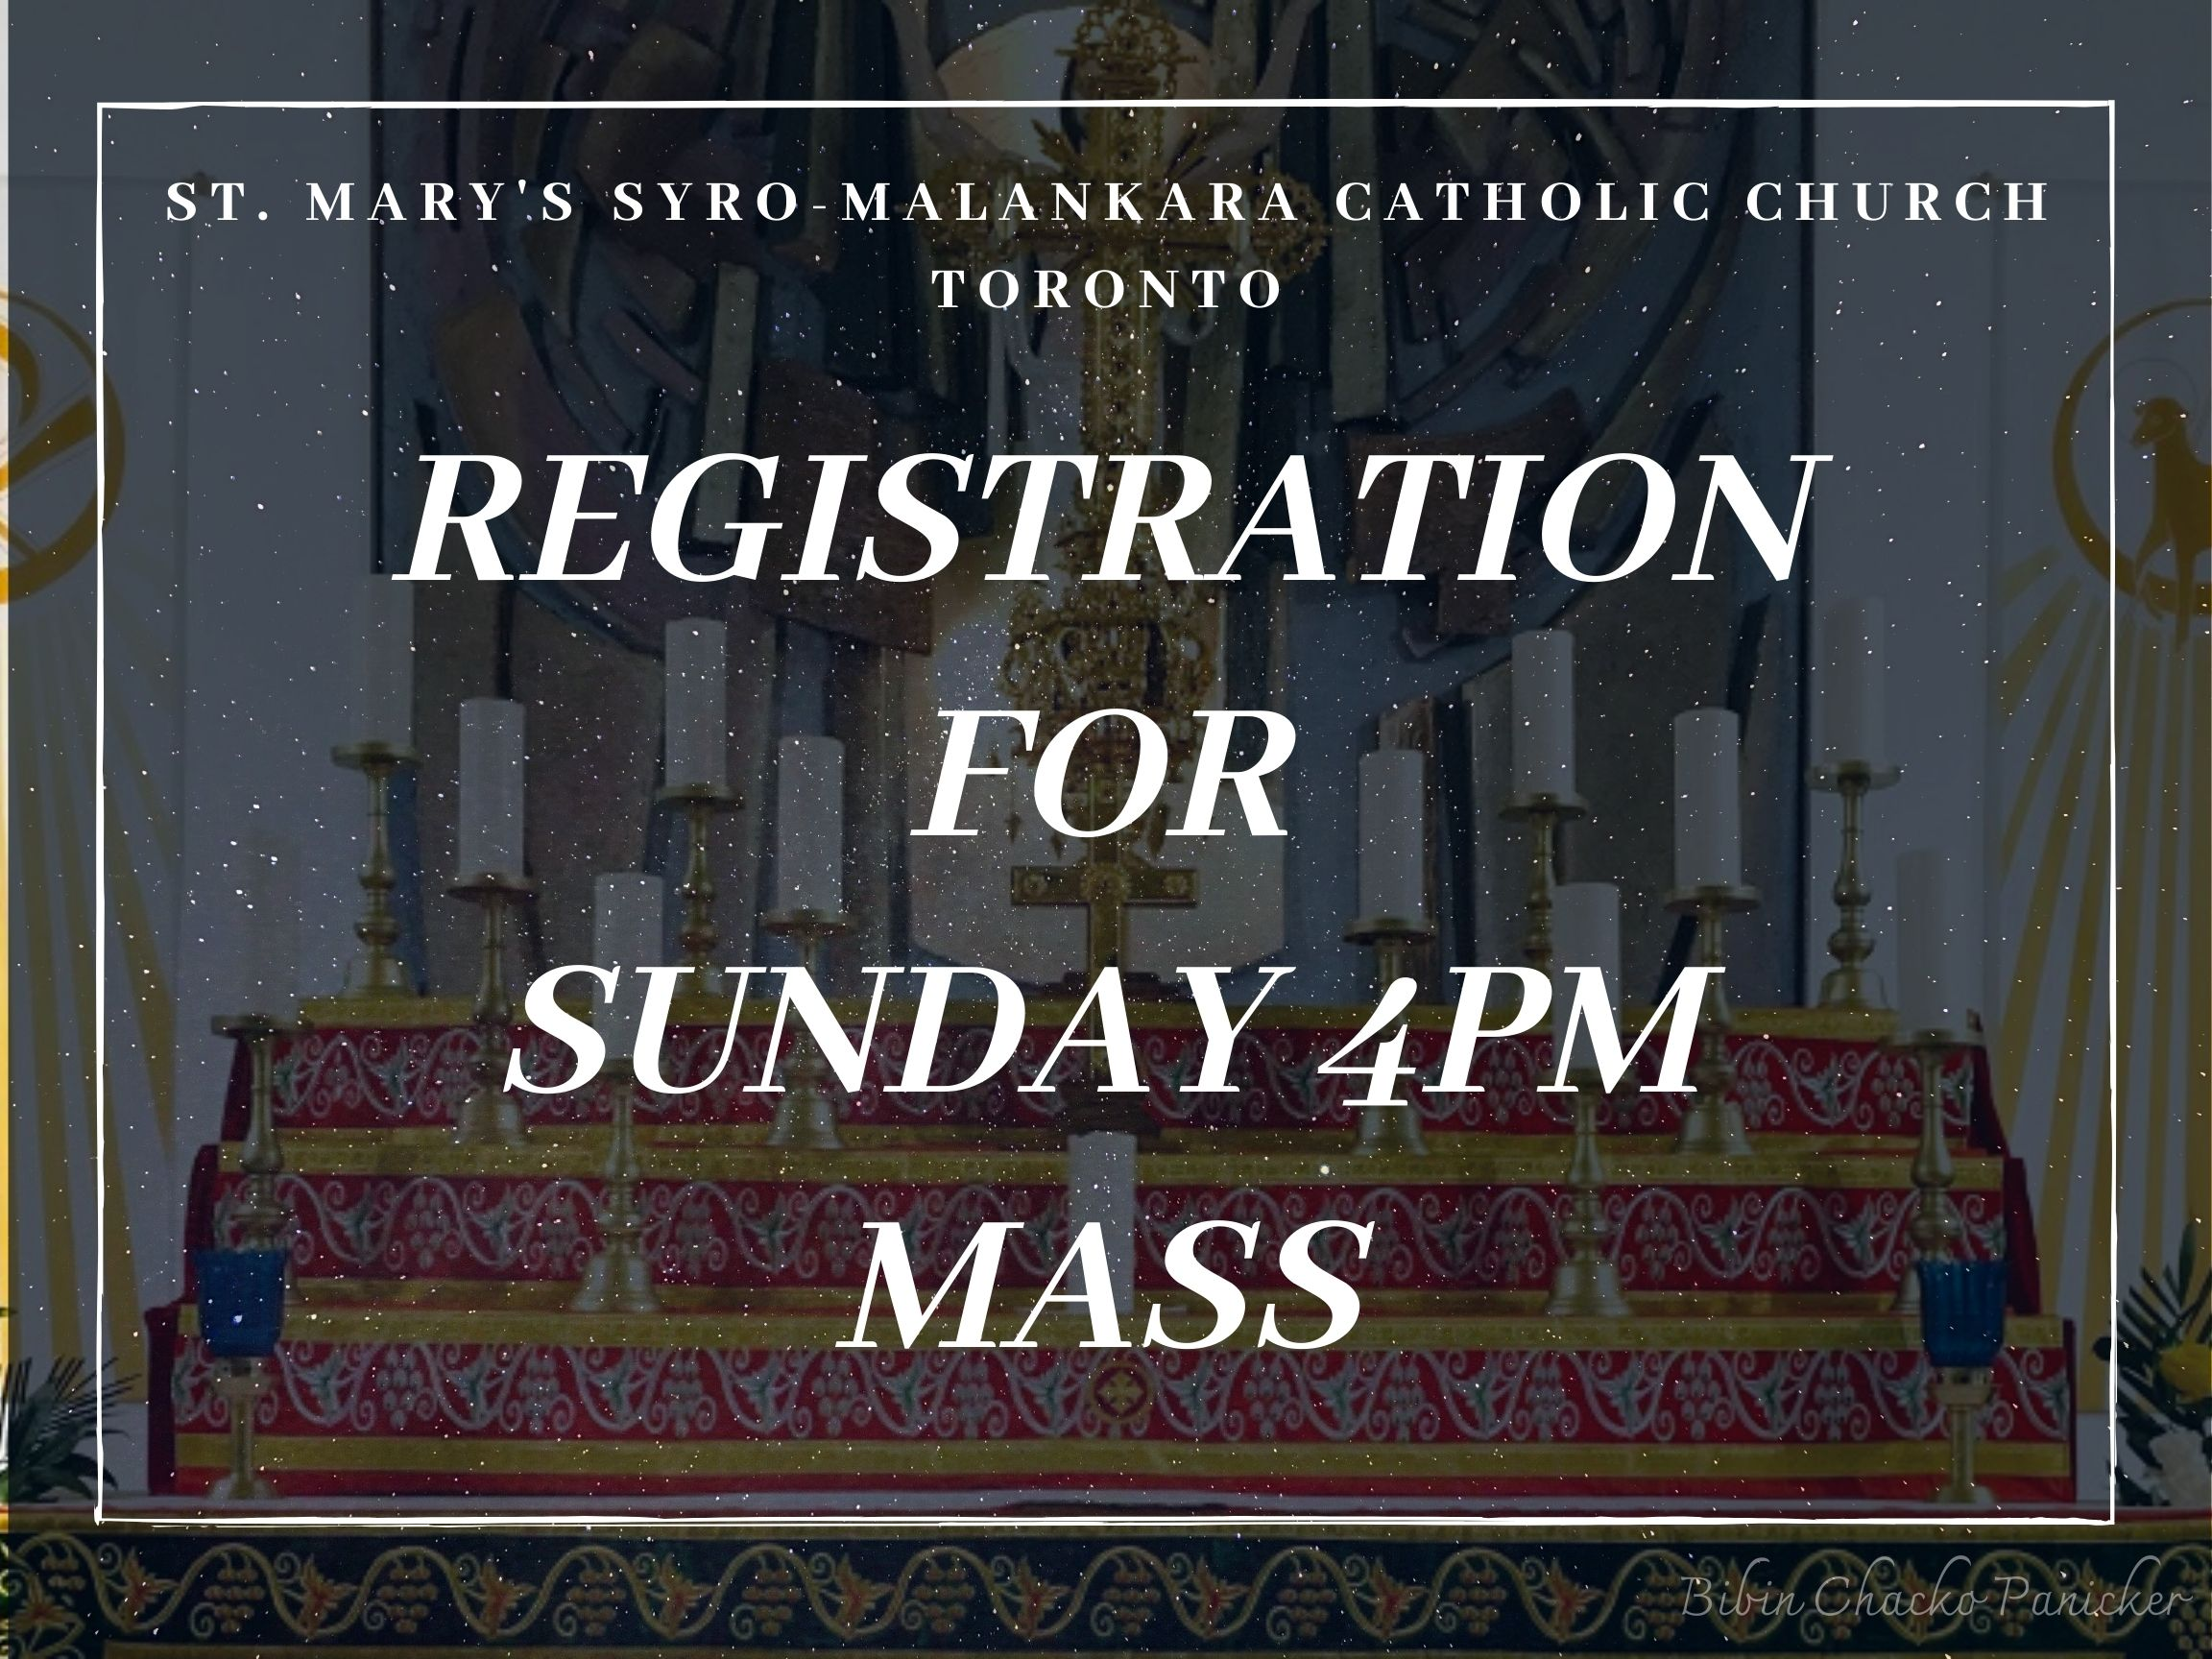 Sunday 4pm Mass sign up - St Marys' Syro-Malankara Catholic Church, Toronto